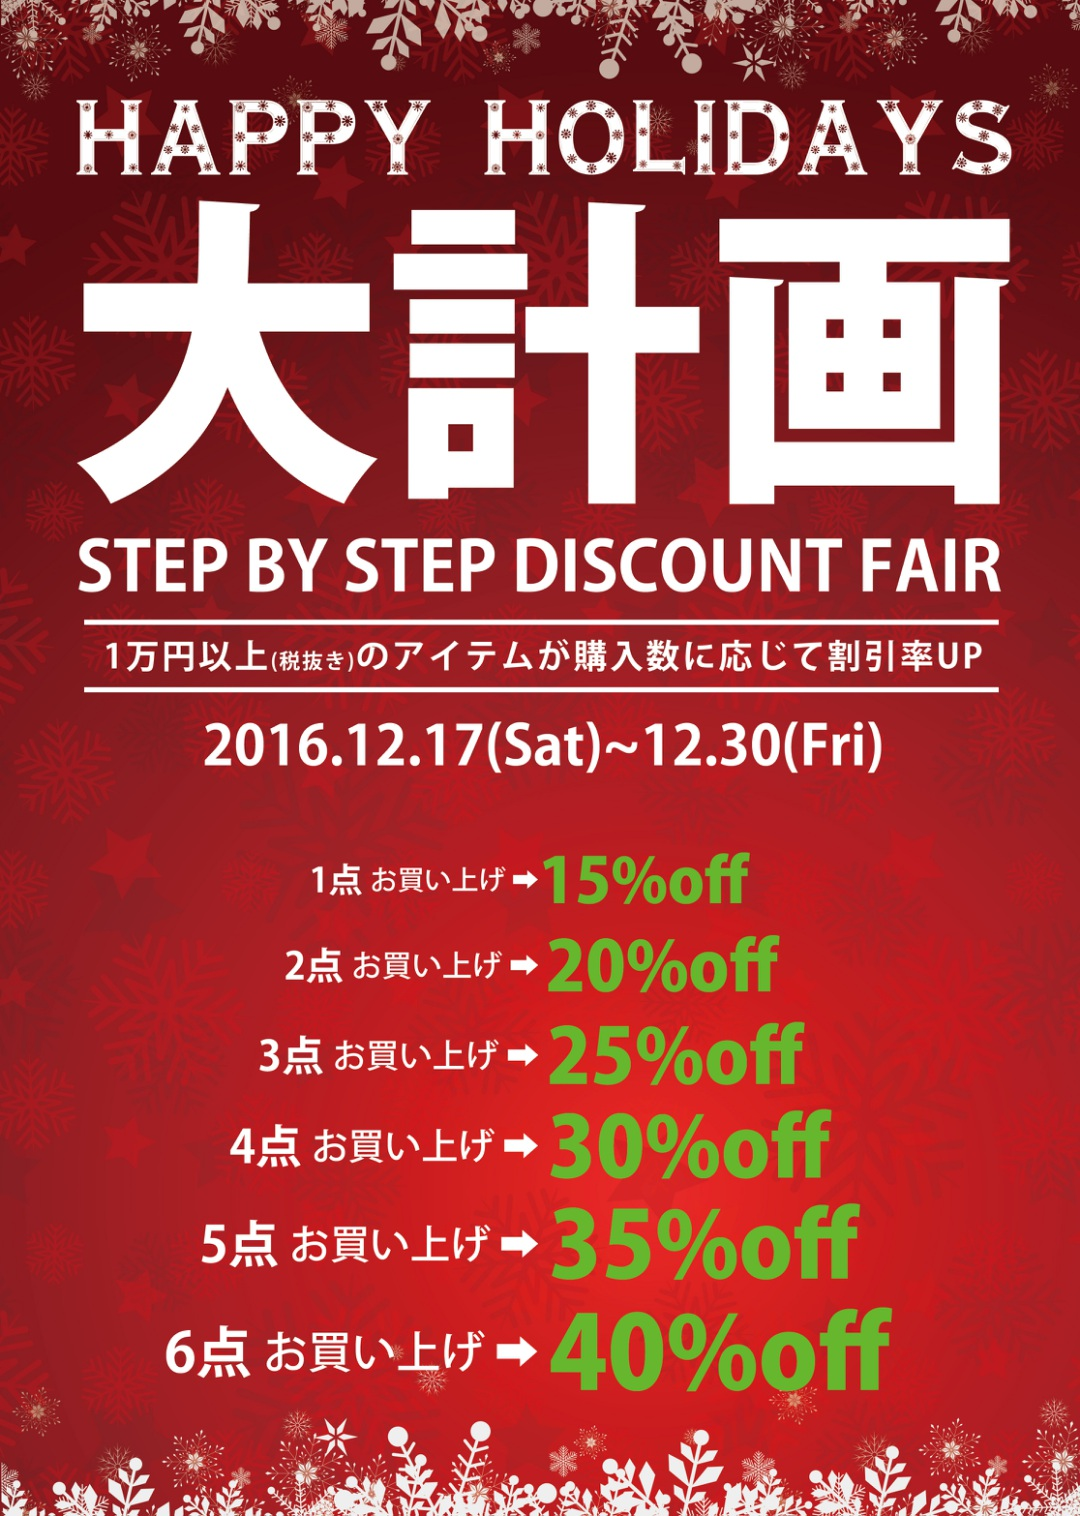 HAPPY HOLIDAYS 大計画 STEP BY STEP DISCOUNT FAIR - UNDERPASS Item Selections vol.2!!_f0020773_19312035.jpg